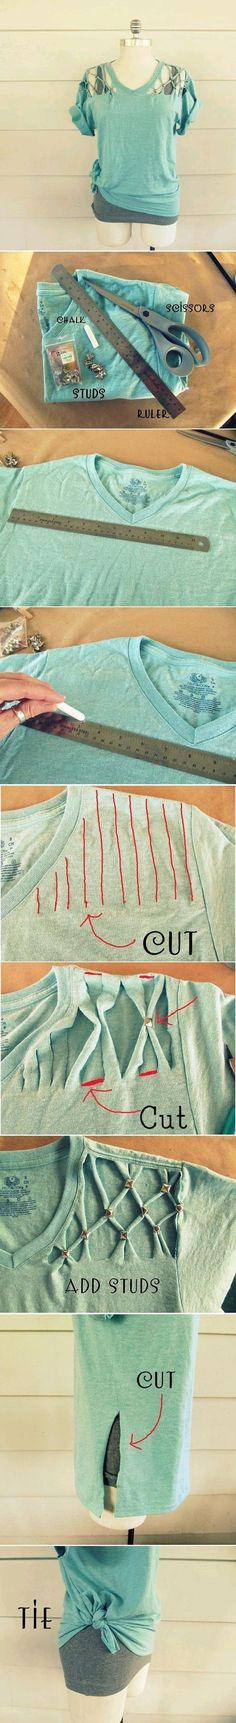 Turn That Old Shirt Into An Awesome Fashion Statement With These 18 DIYs